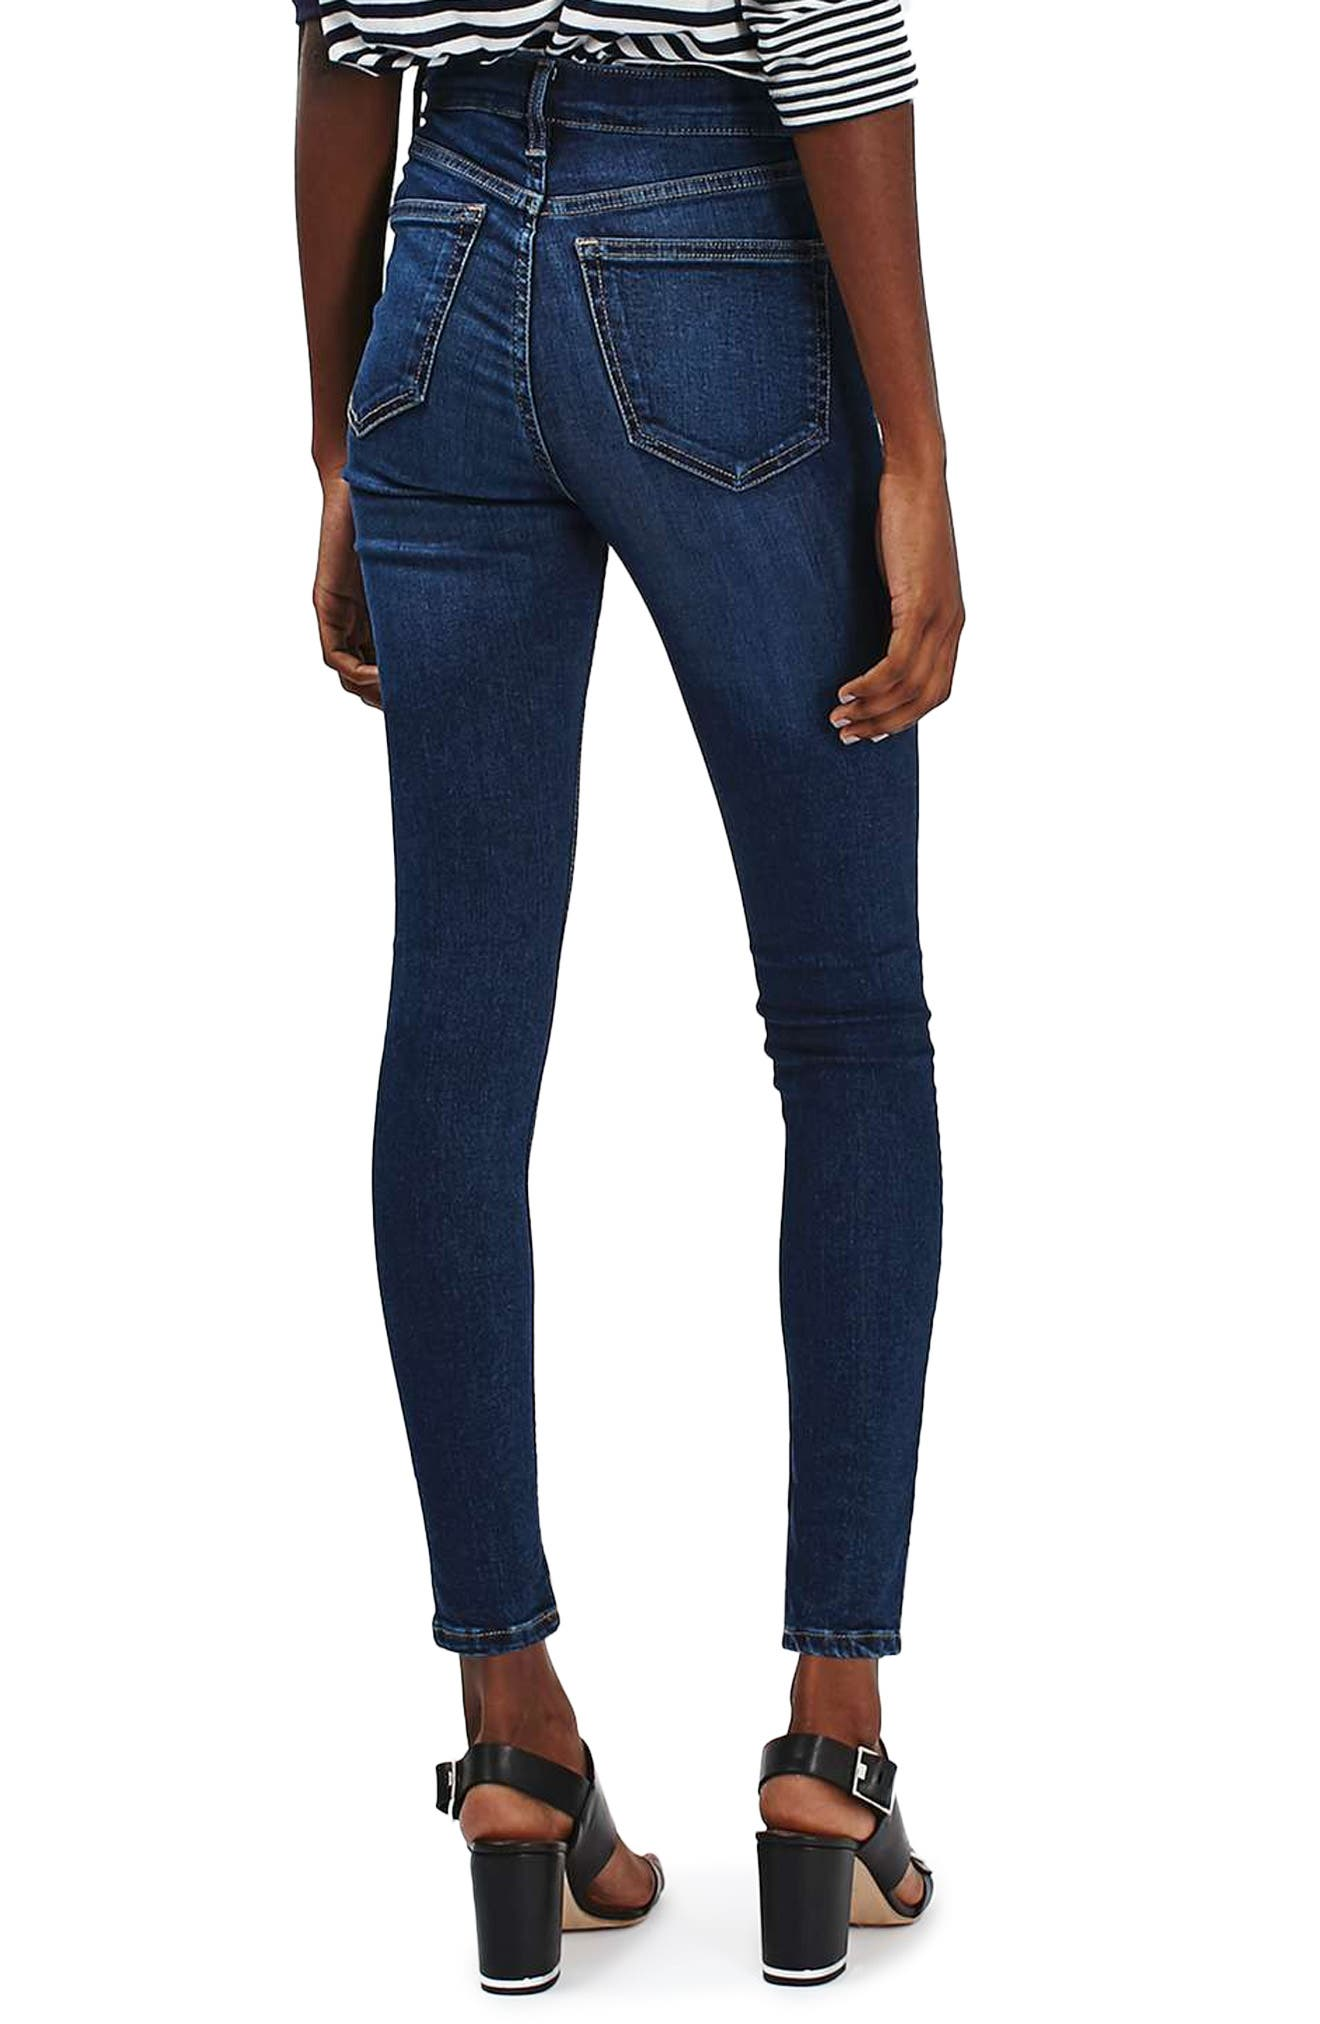 Jamie High Waist Ankle Skinny Jeans,                             Alternate thumbnail 2, color,                             401